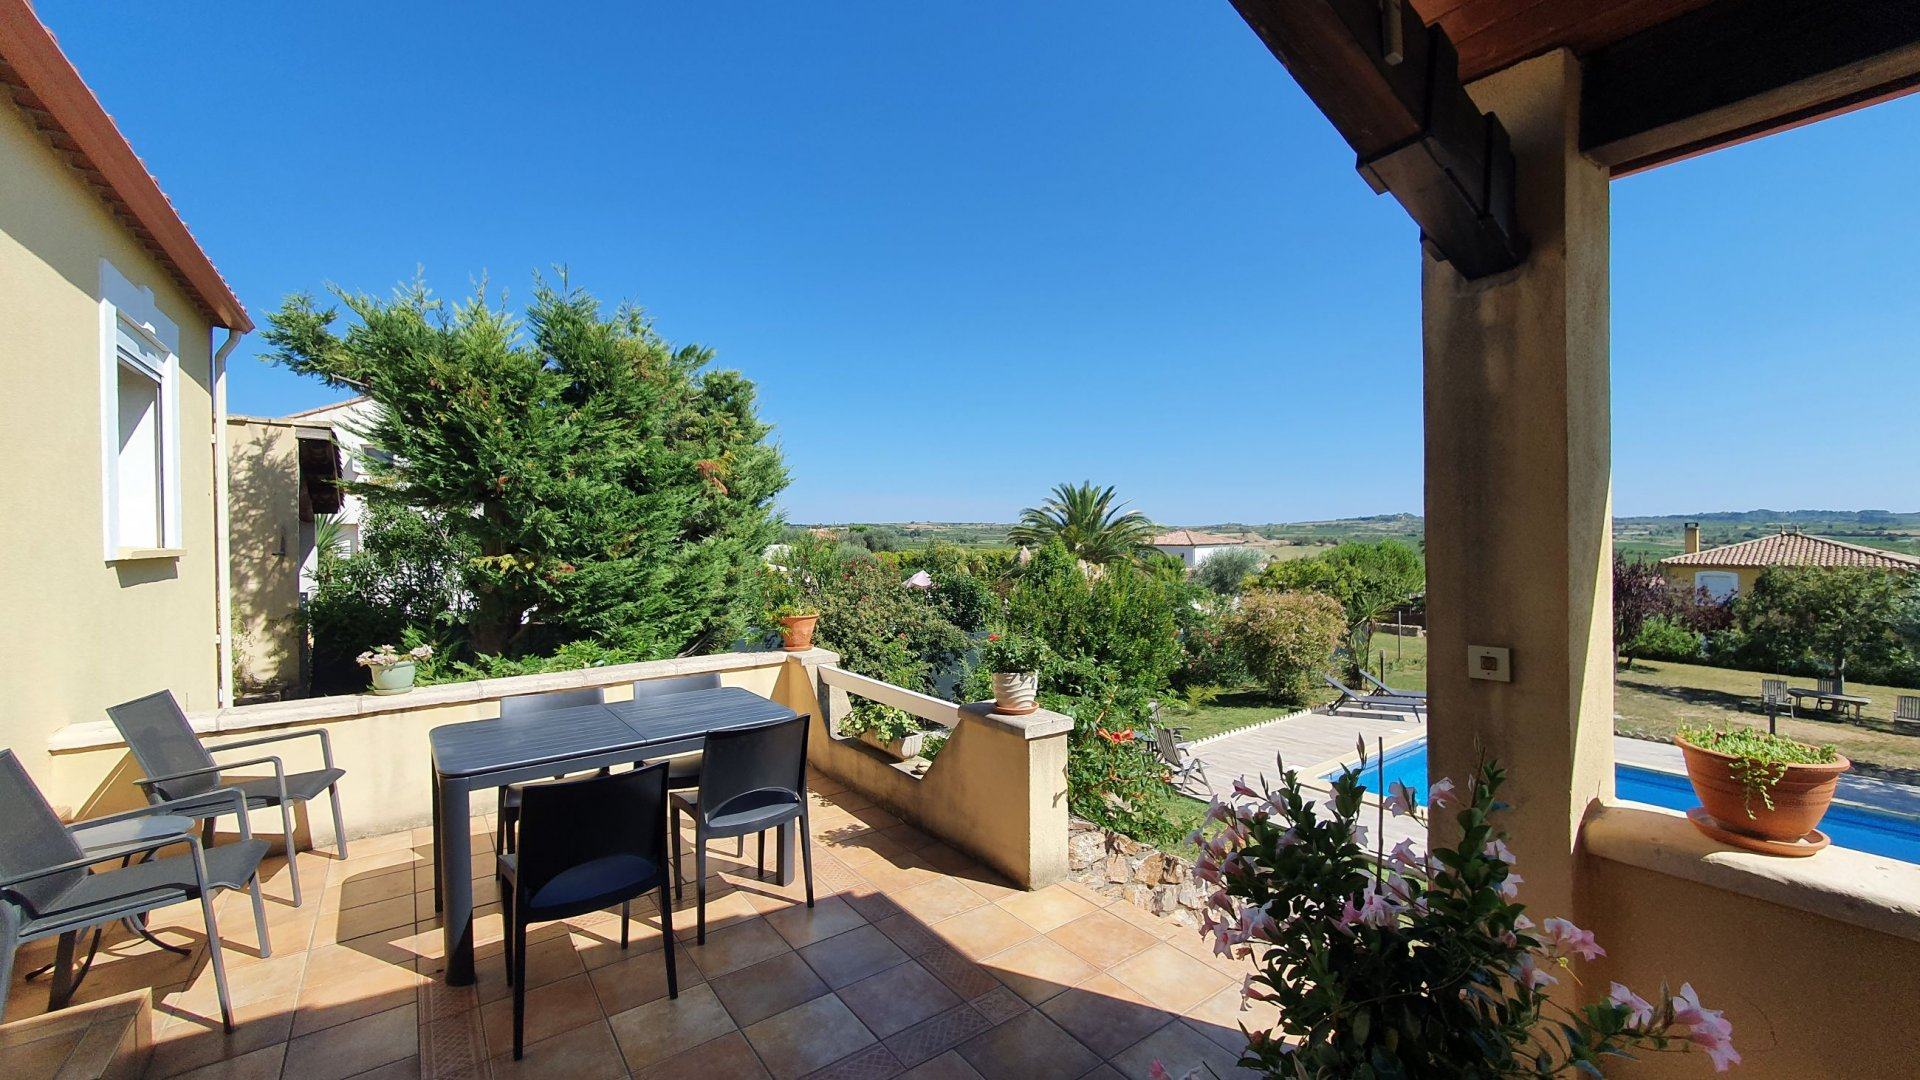 Super 3/4 bedroom villa with panoramic views, large garden and pool